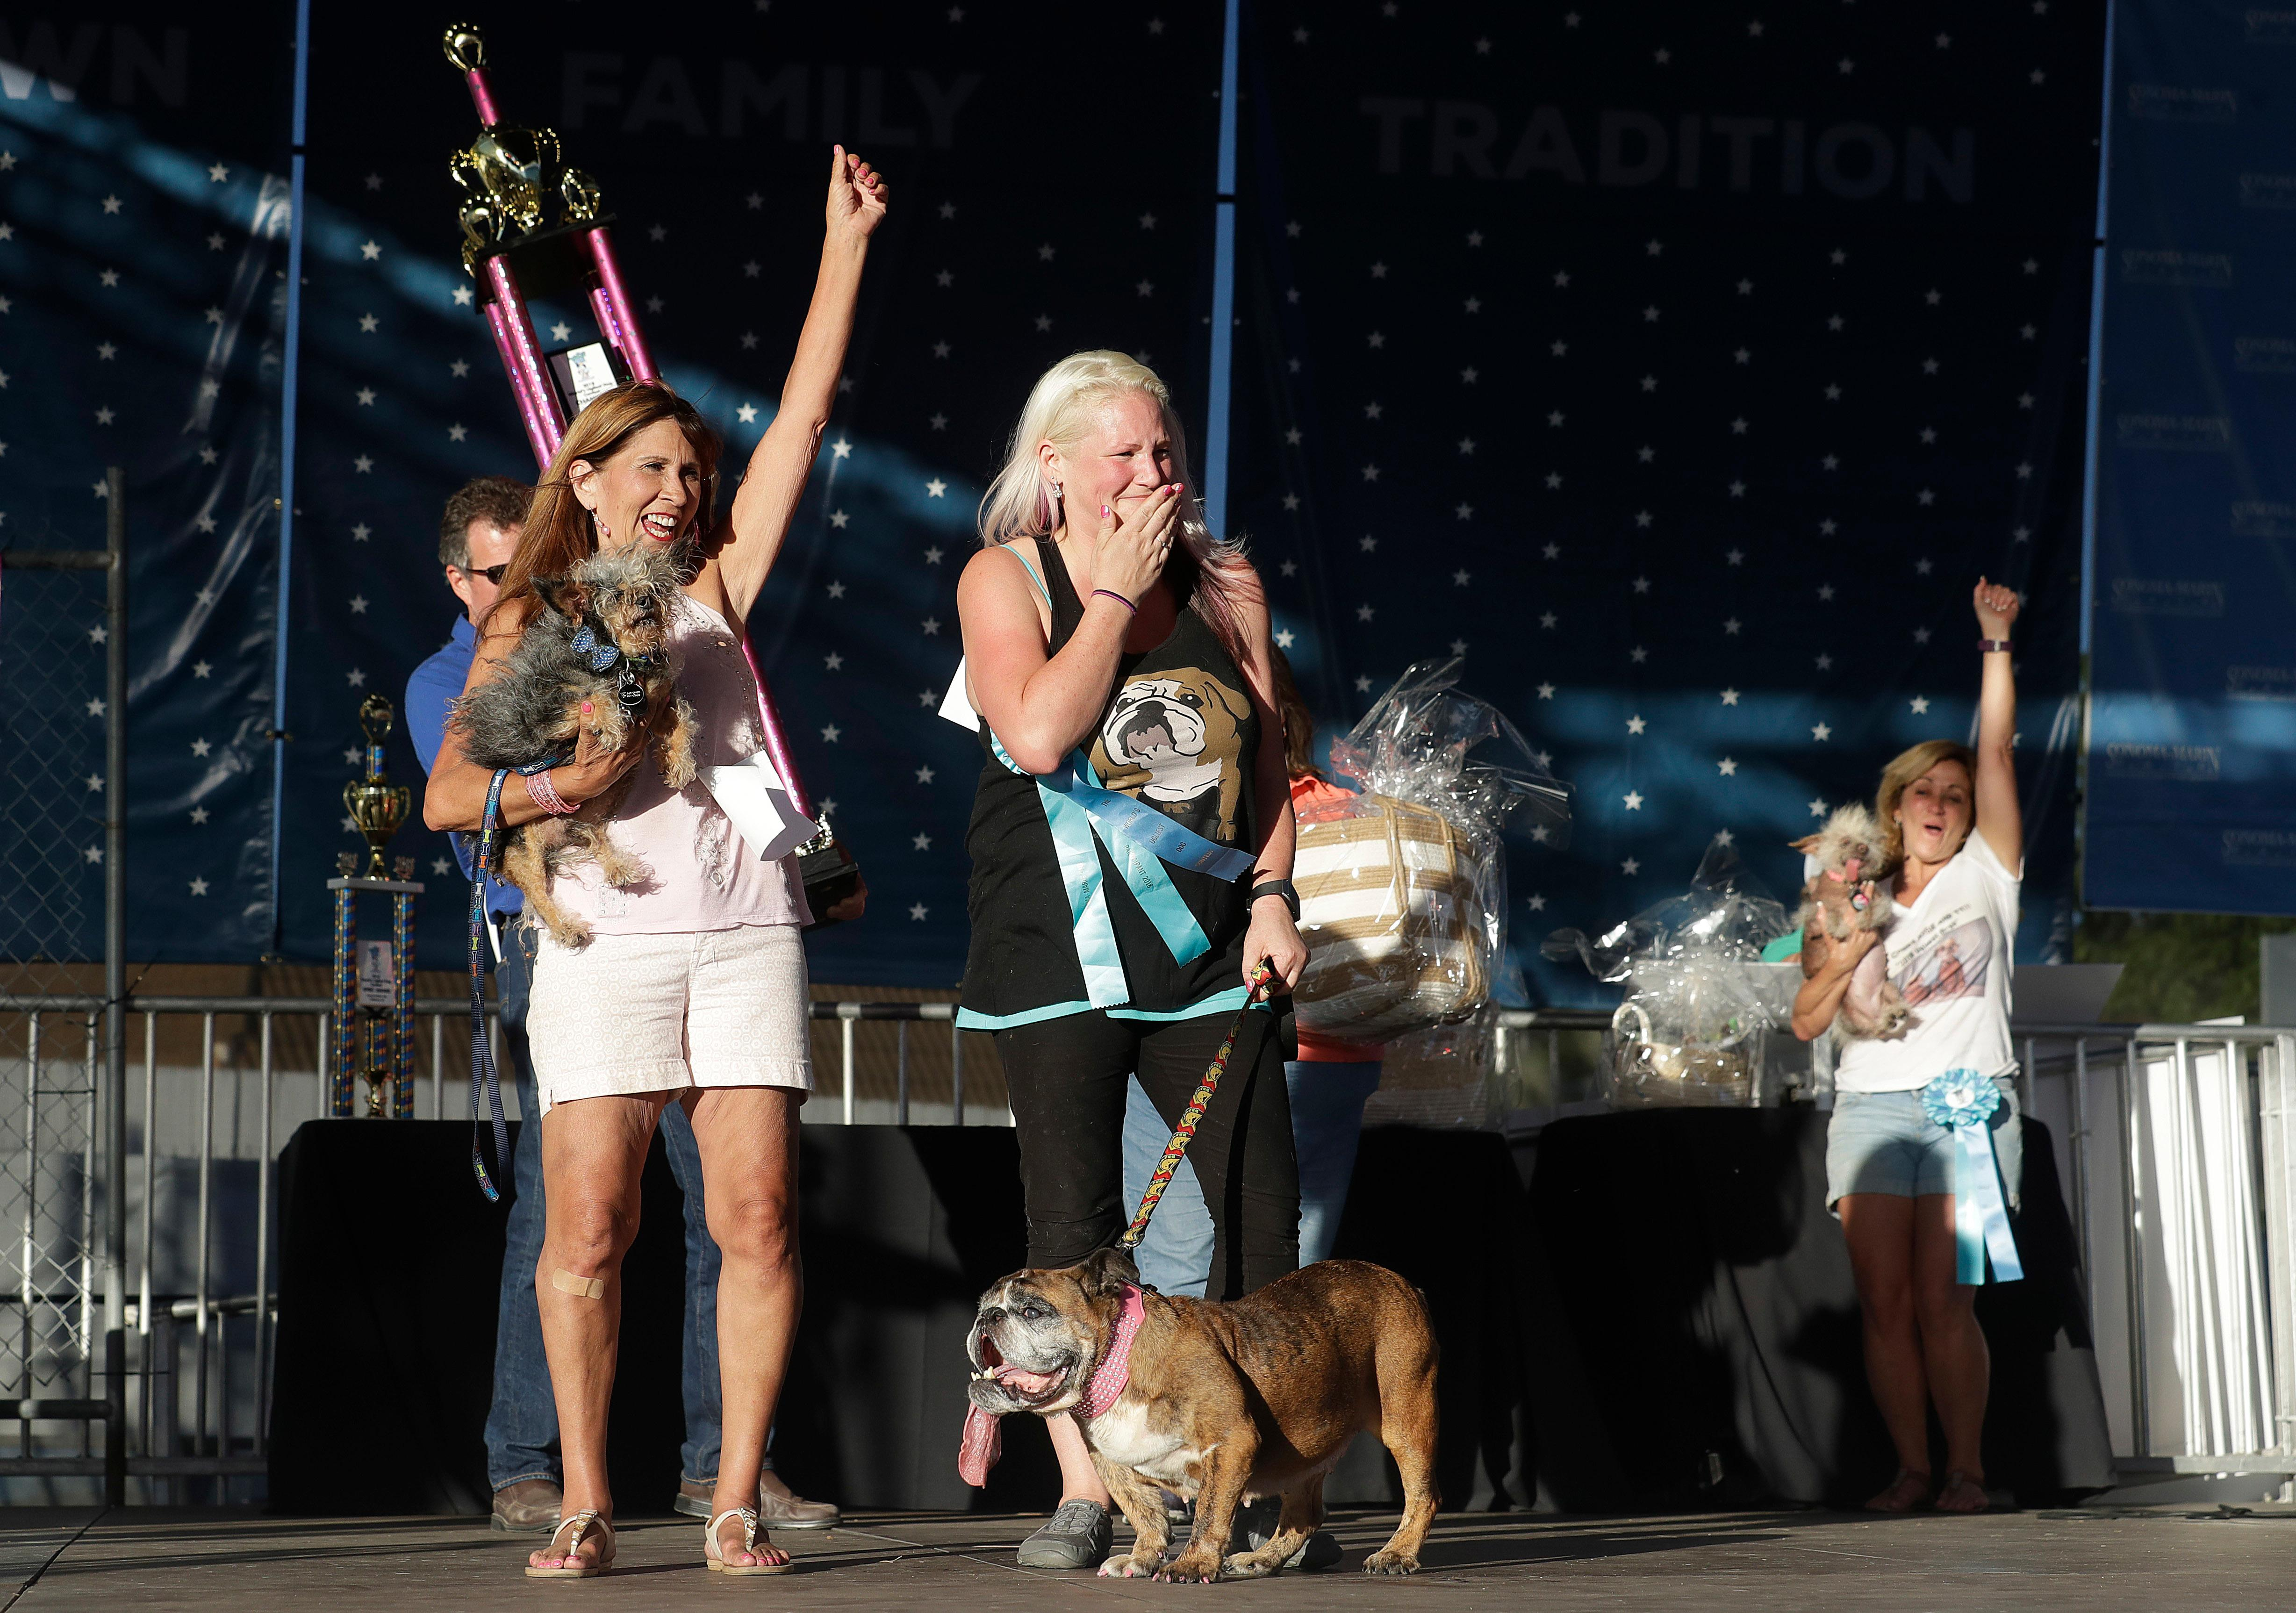 Megan Brainard, center, reacts after her dog Zsa Zsa, an English Bulldog, bottom, is announced the winner of the World's Ugliest Dog Contest at the Sonoma-Marin Fair in Petaluma, Calif., Saturday, June 23, 2018. Also pictured at left is Yvonne Morones, holding her dog Scamp, who placed second, and Linda Elmquist, holding her dog Josie, who finished third. (AP Photo/Jeff Chiu)